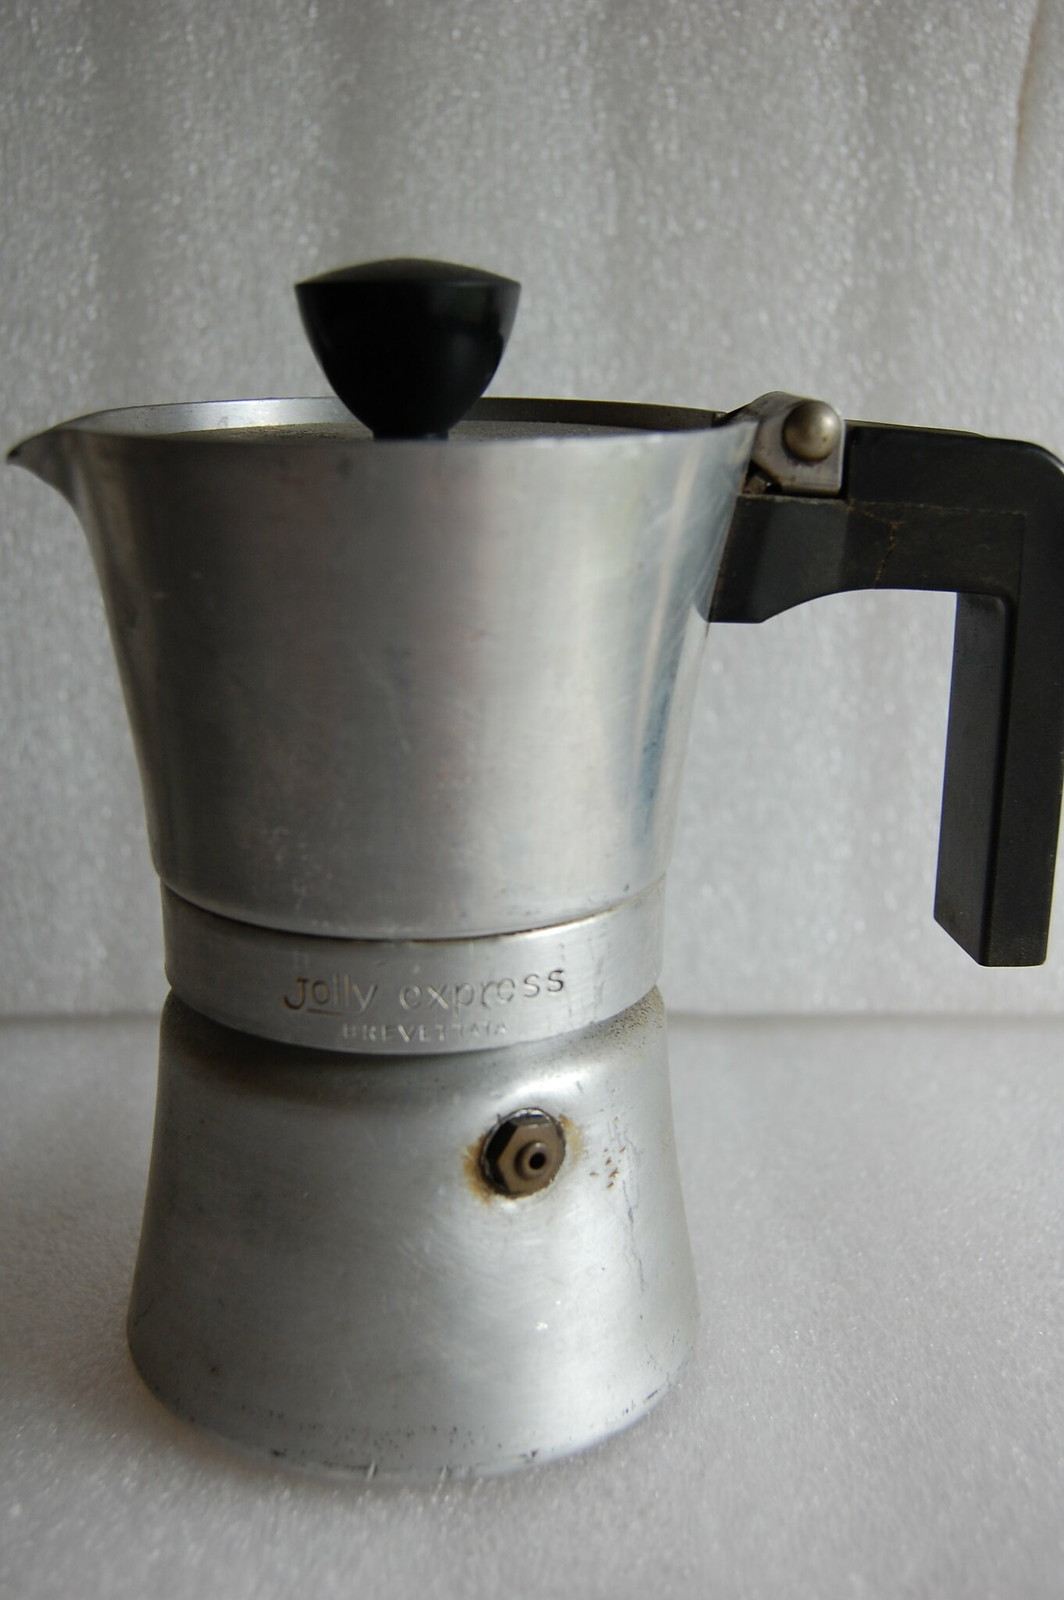 CAFFETTIERA JOLLY EXPRESS VINTAGE ANNI 60 COFFEE MACHINE , MADE IN ITALY 1960 s